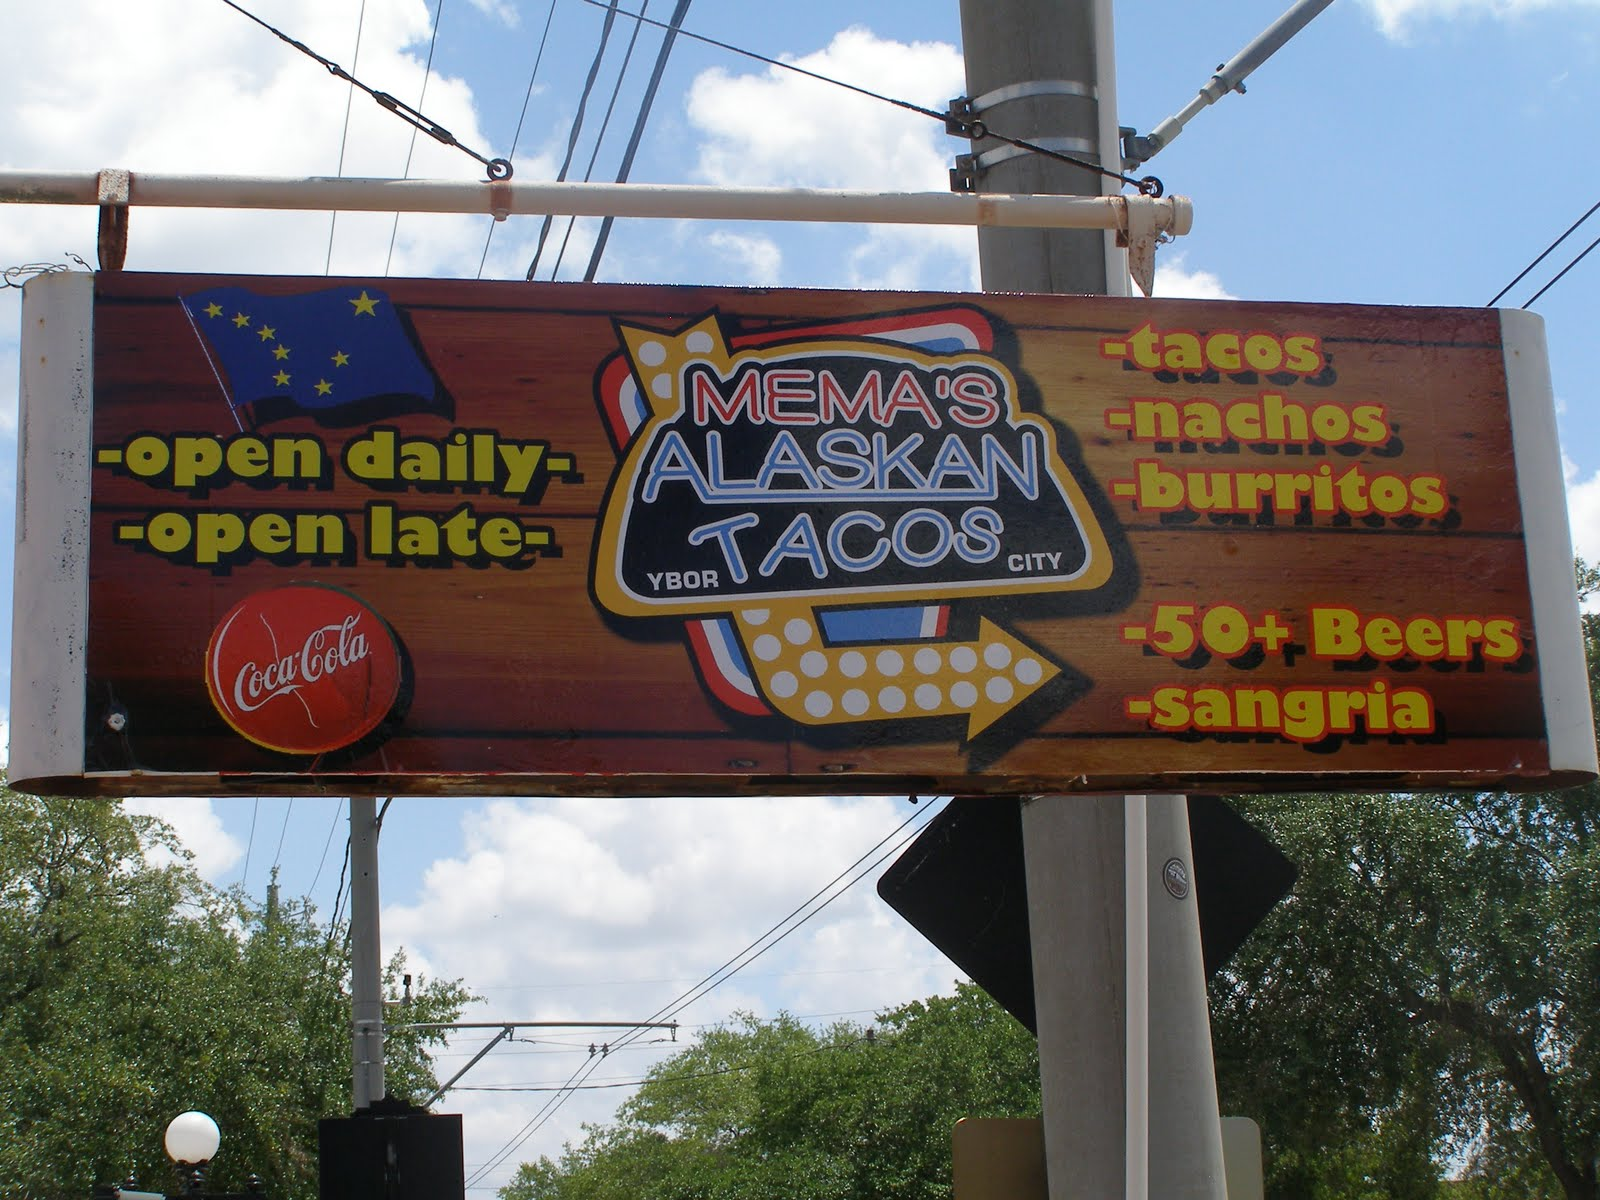 Mema's Alaskan Tacos closing shop, last day to visit October 14th